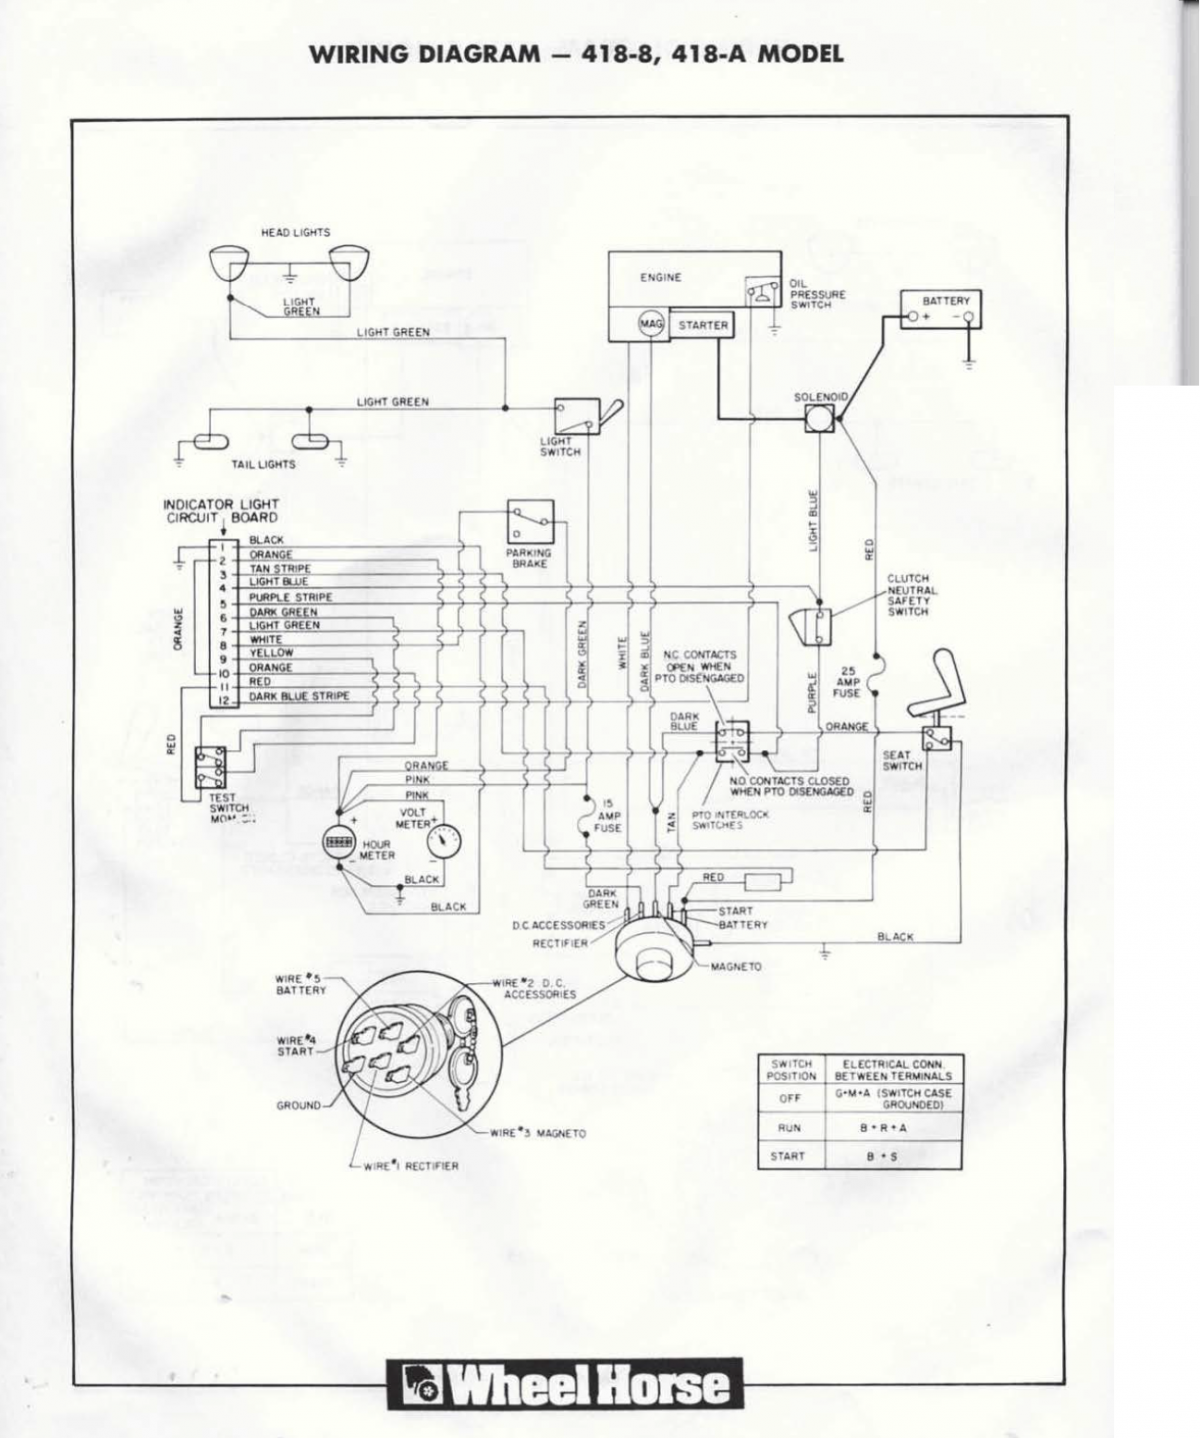 418-a Wiring Diagram Needed